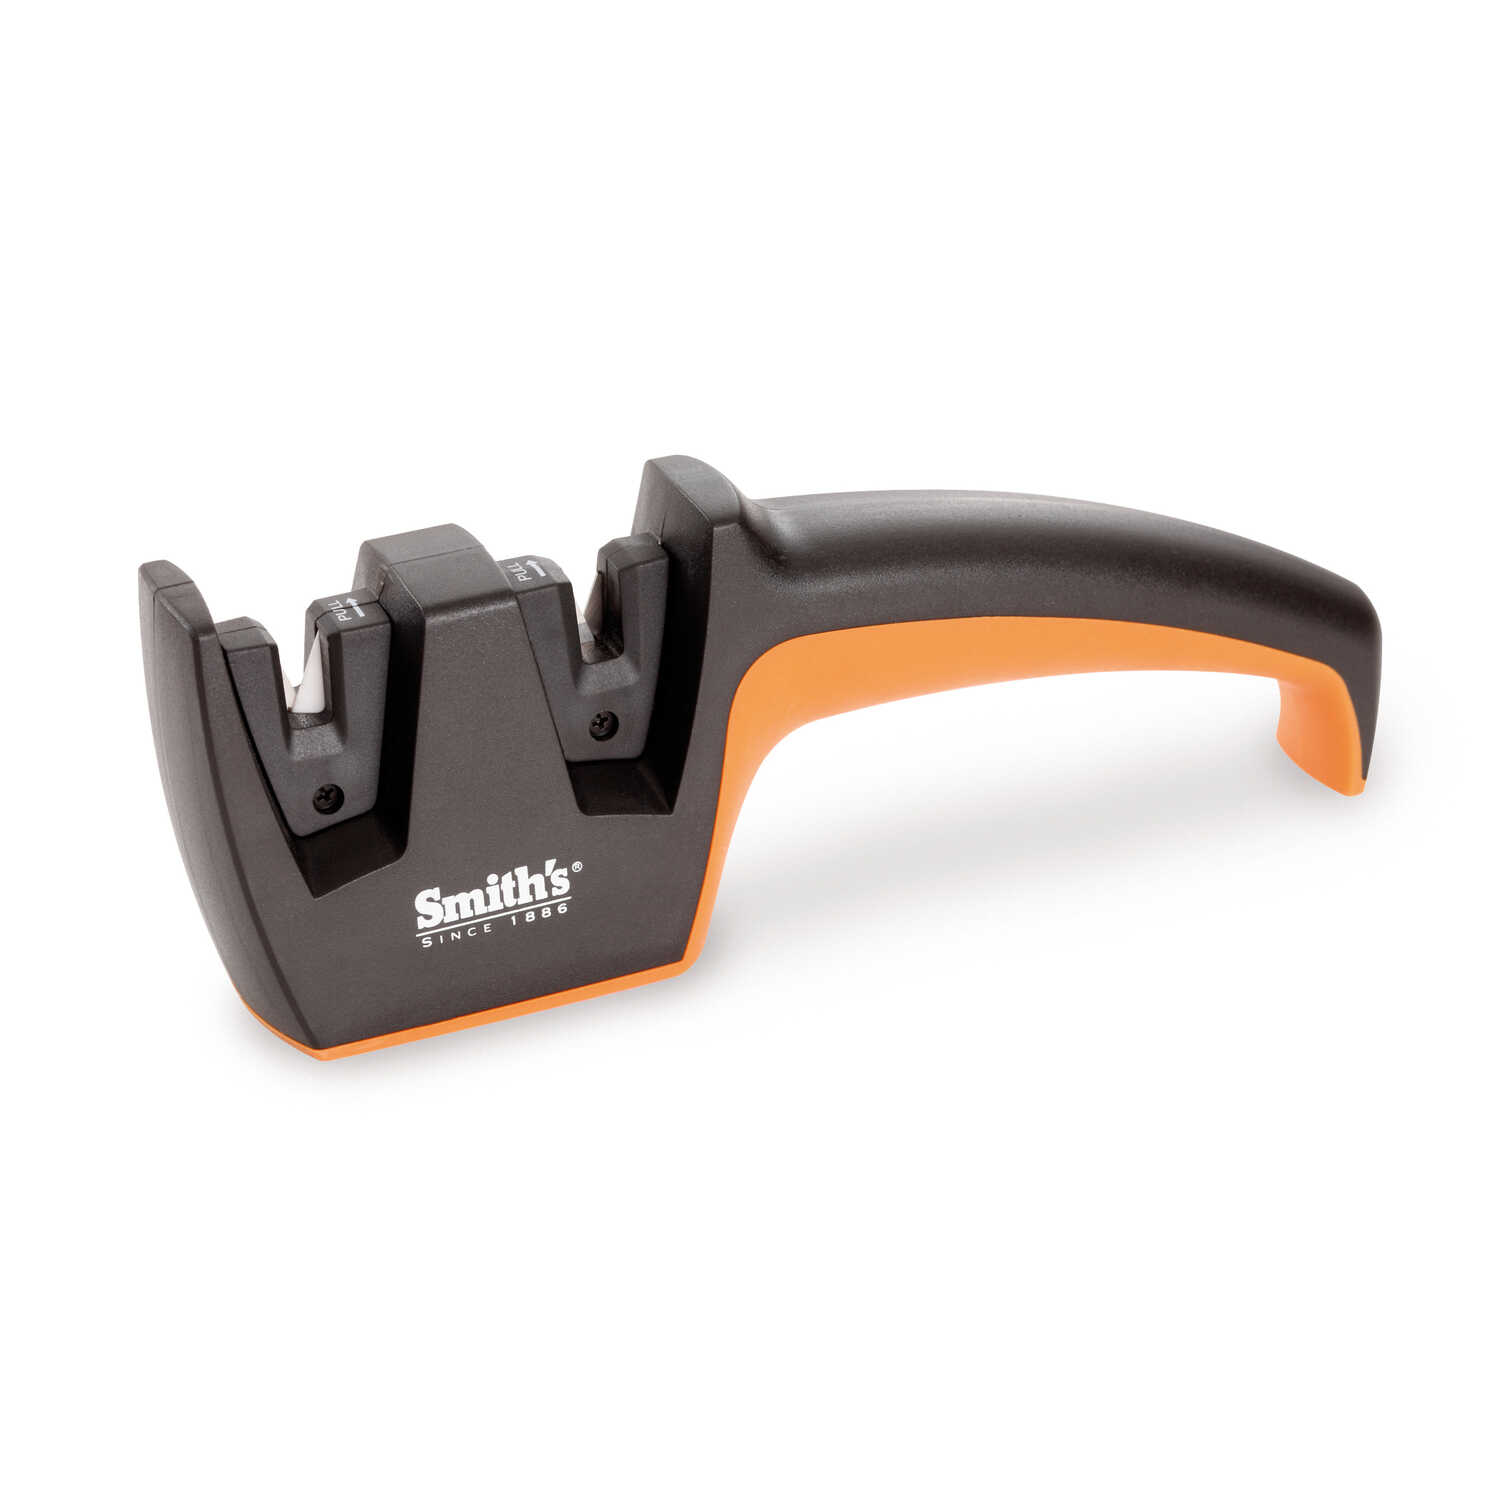 Smith's  Edge Pro  Pull-Through Knife Sharpener  Silicon Carbide  1 pc.